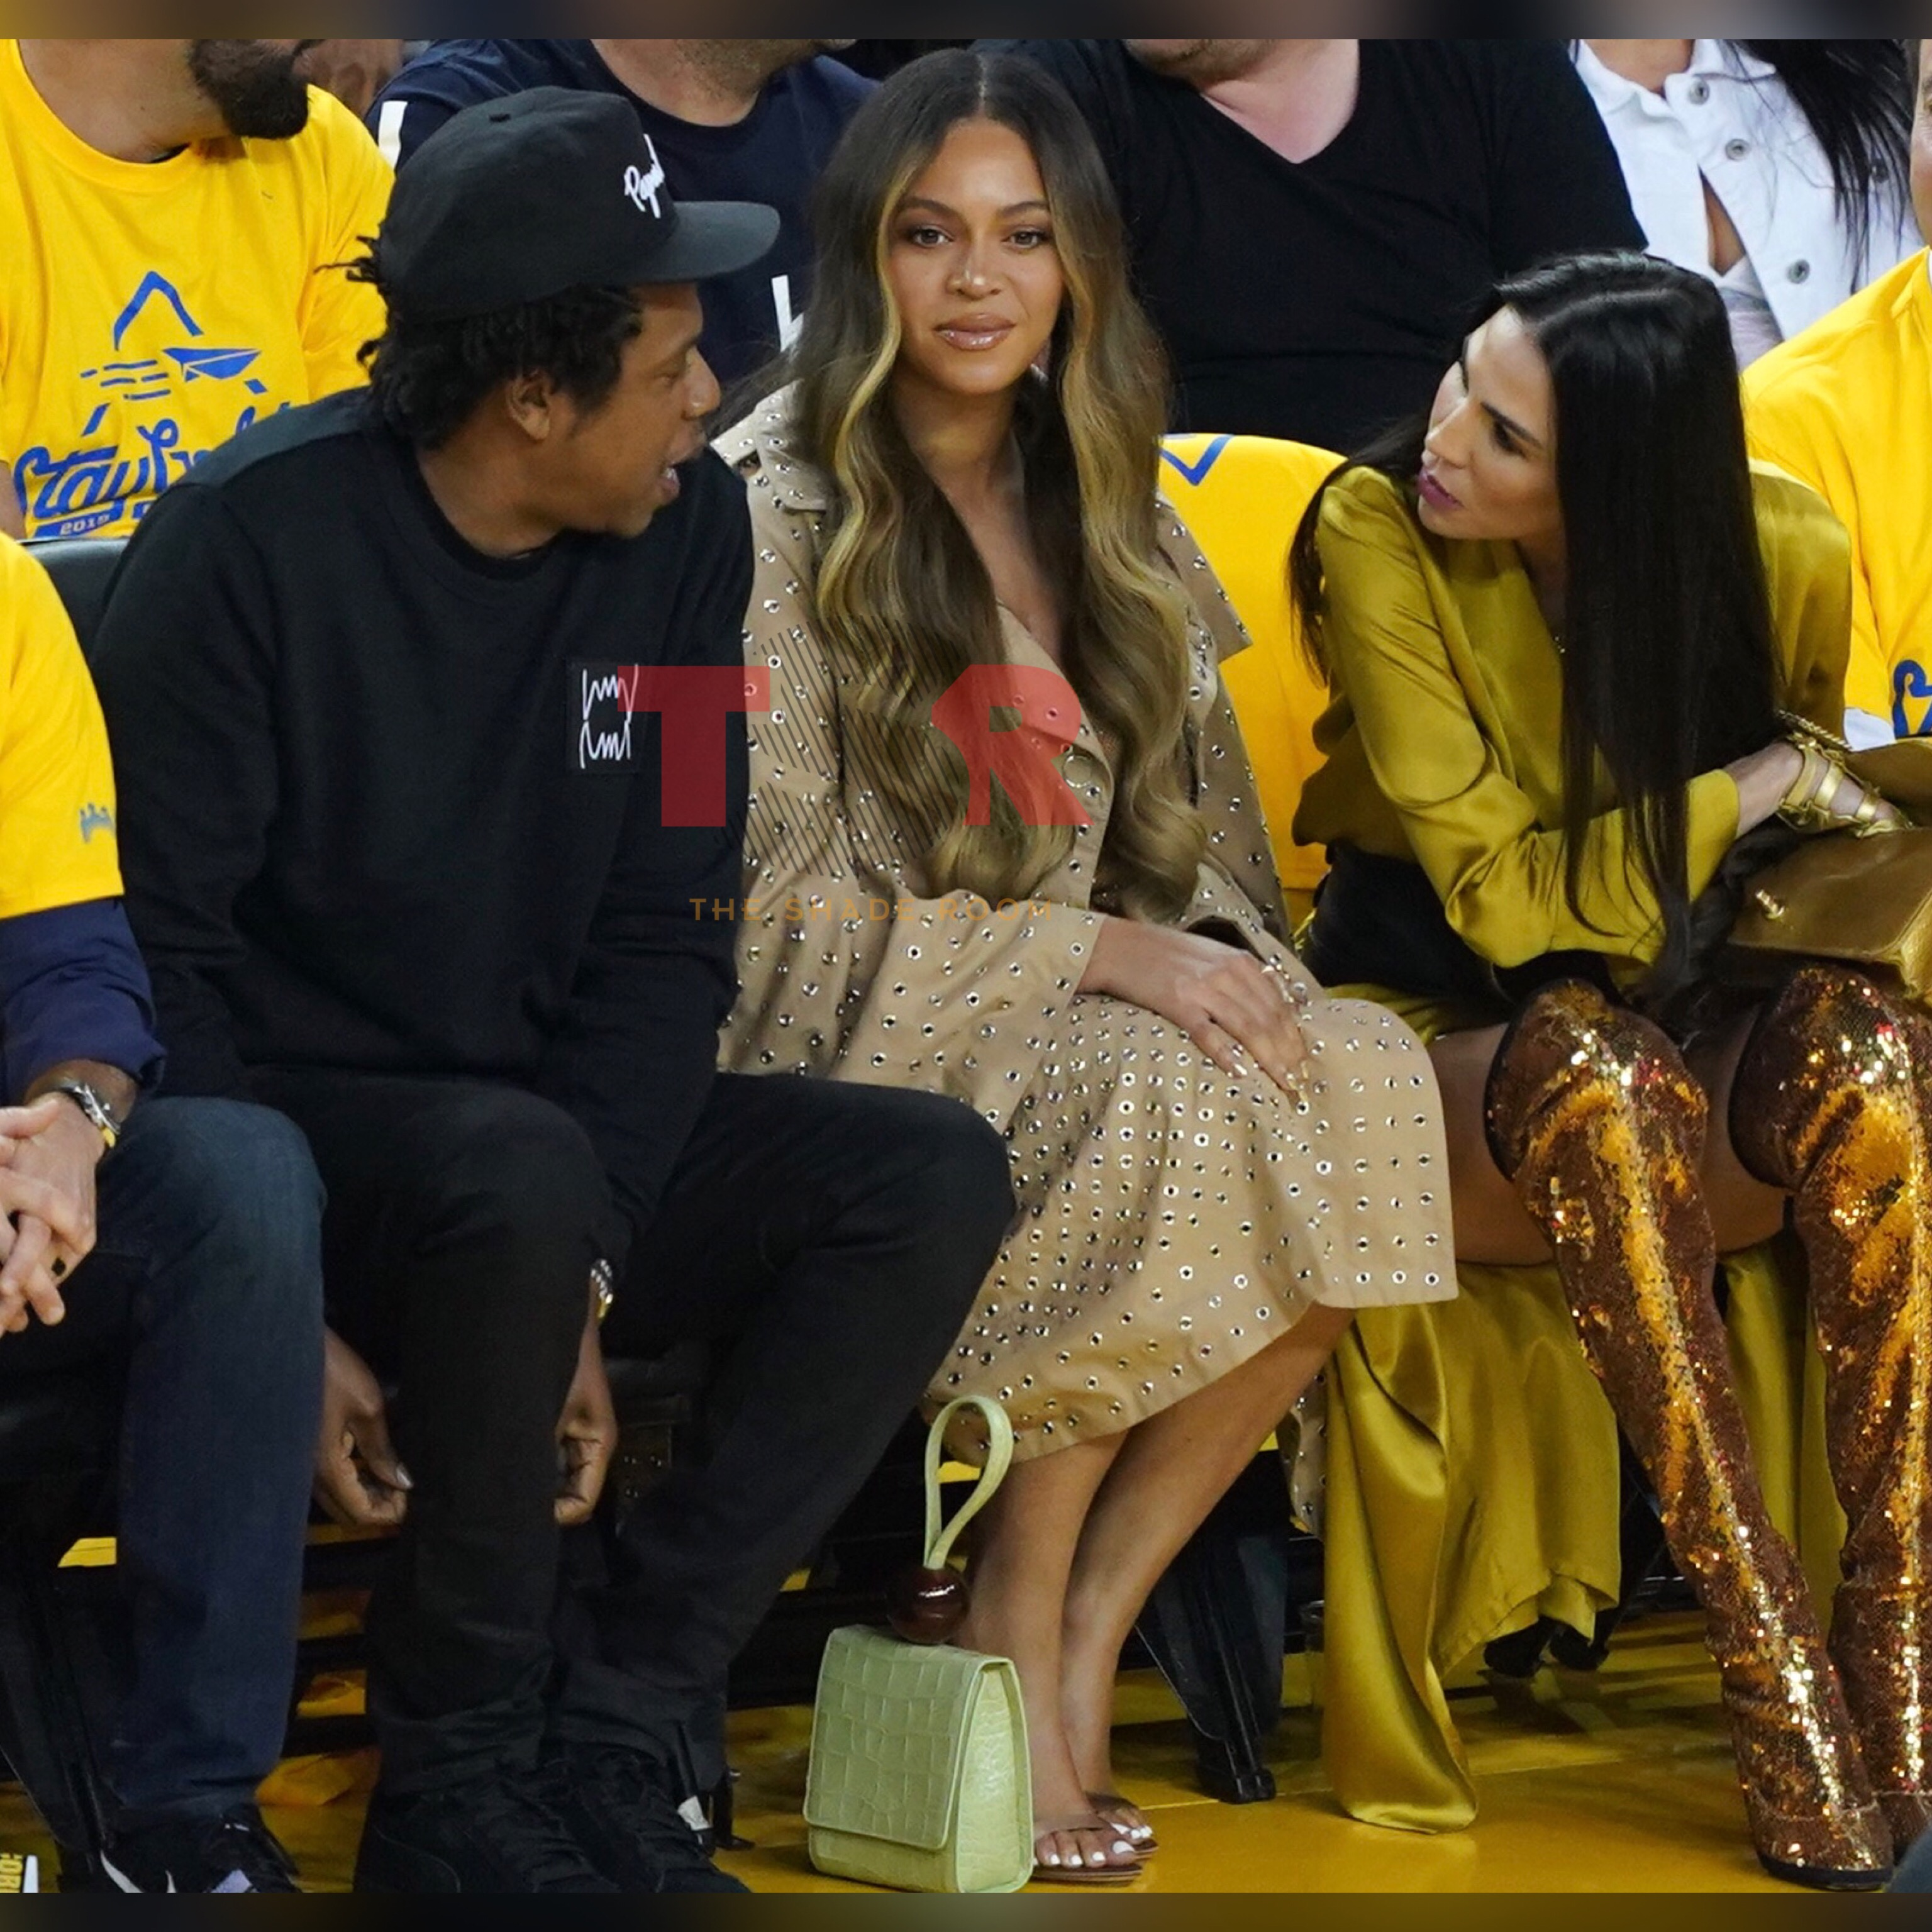 The Beyhive Drags Golden State Warriors' Wife For Leaning Over Beyonce To Talk To Jay Z